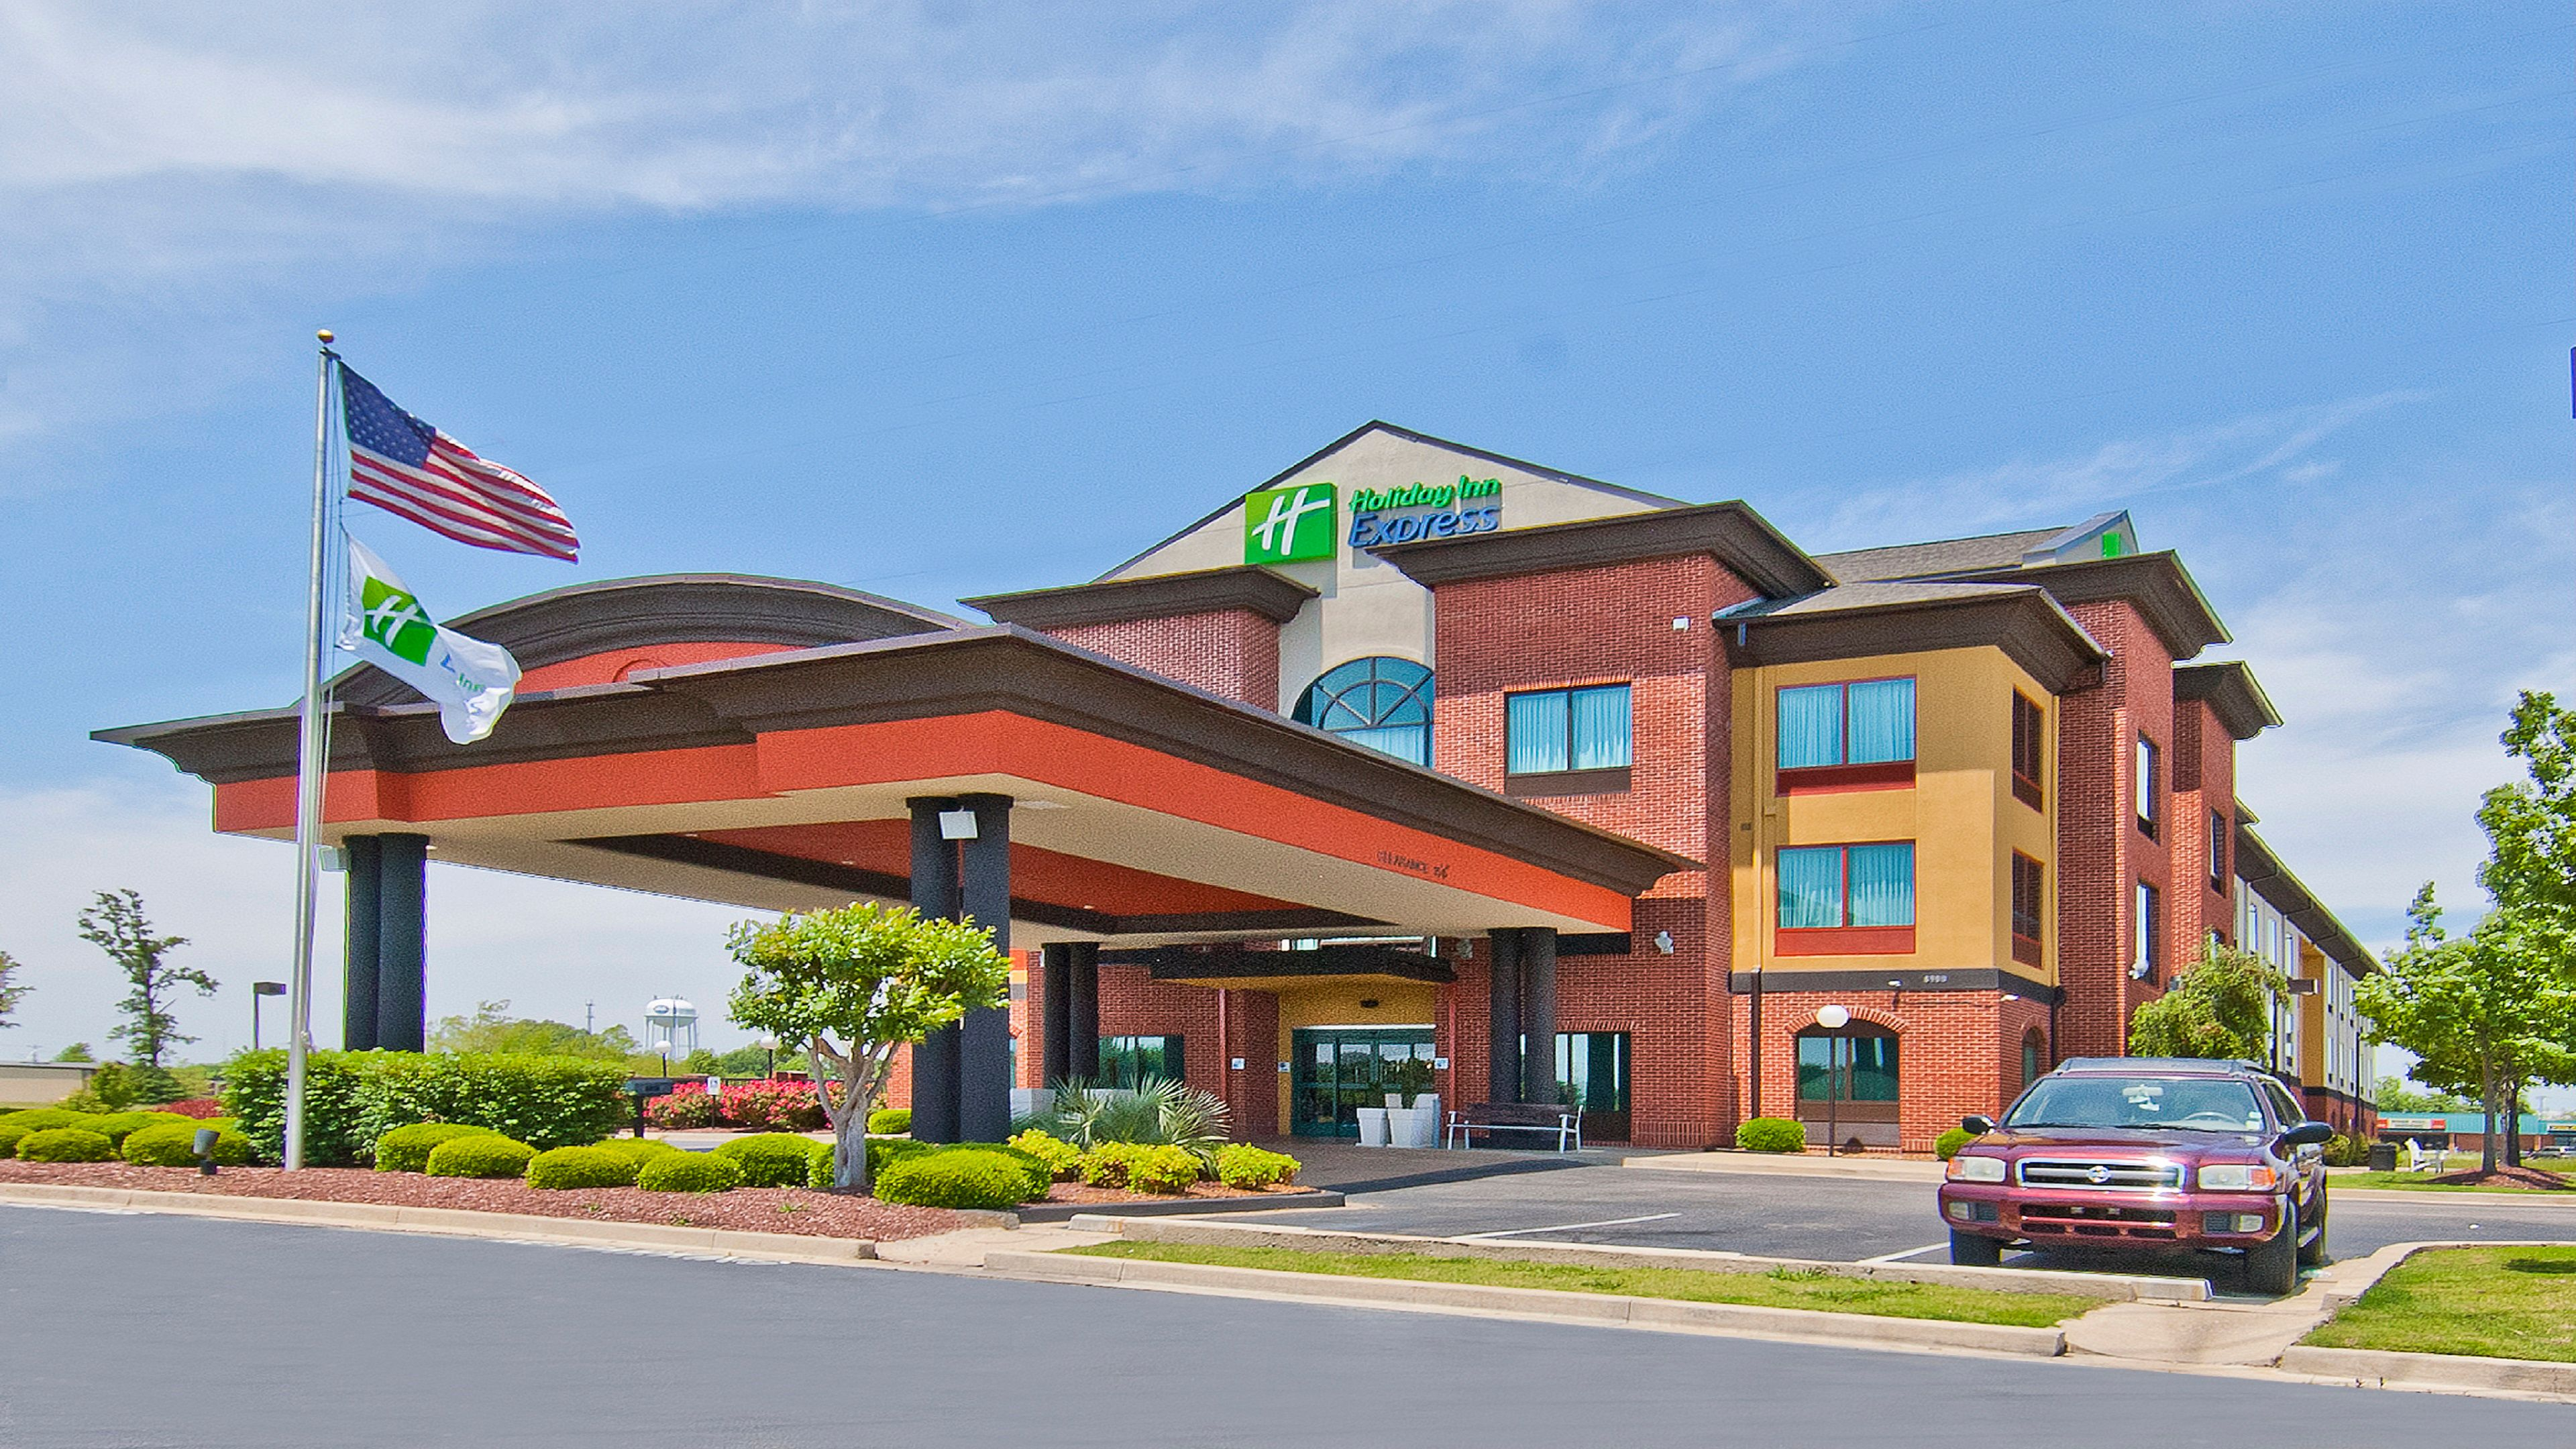 Holiday Inn Express Suites Olathe North Olathe Kansas Ks